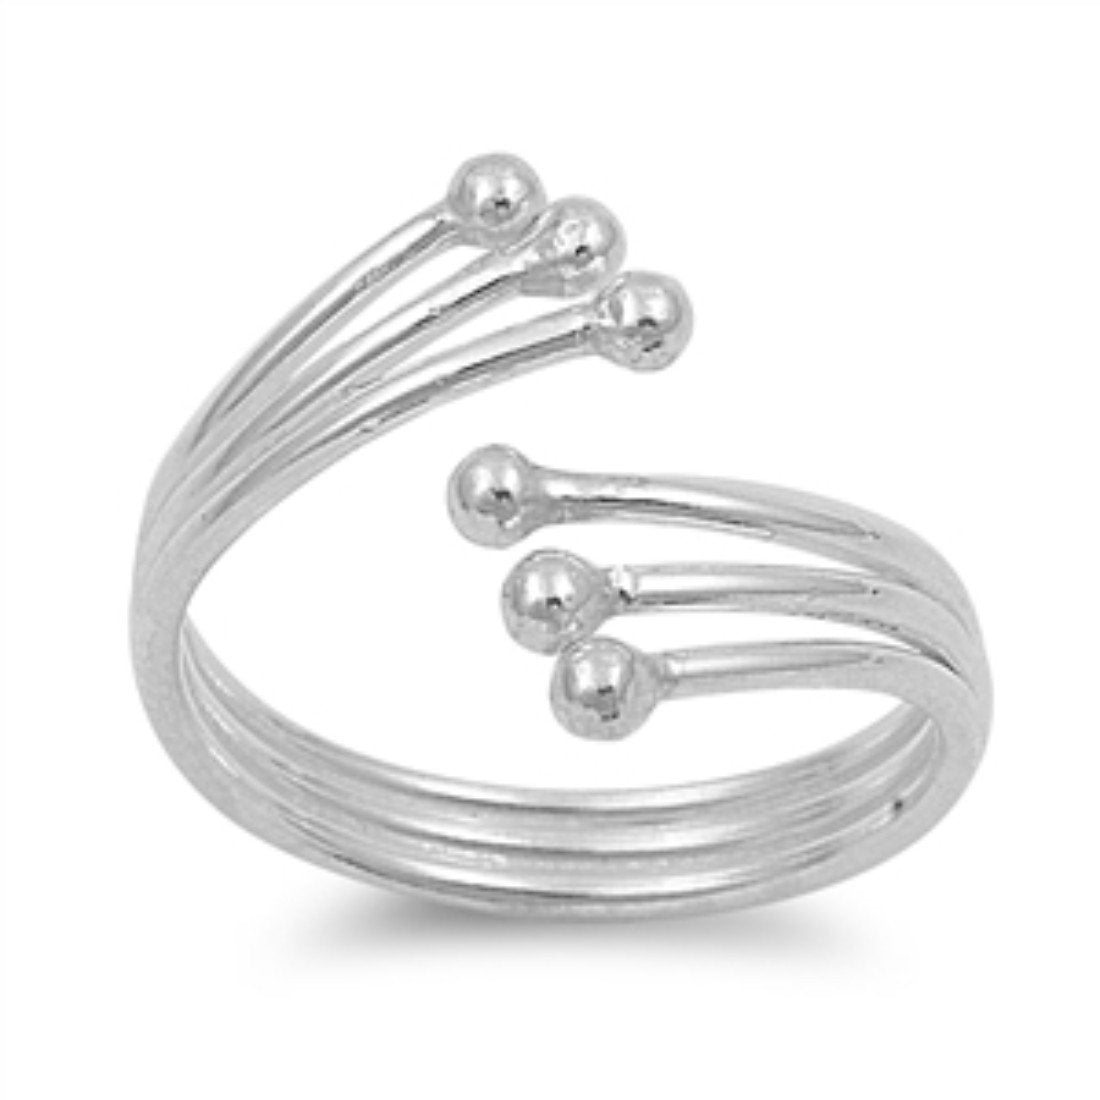 Silver Toe Ring Adjustable Band 925 Sterling Silver (11mm)